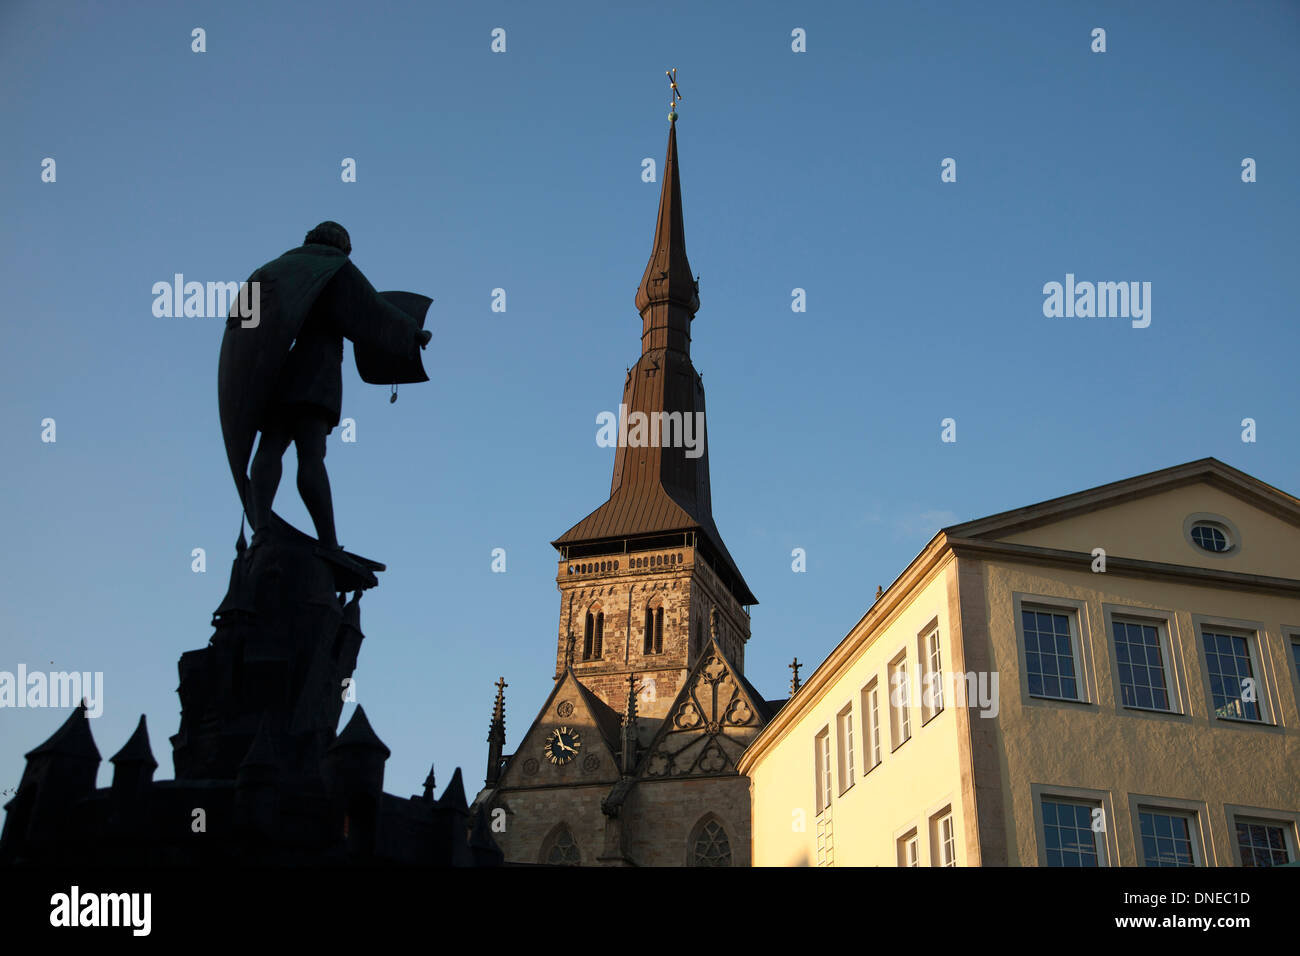 fountain Buergerbrunnen and St. Marys church in Osnabrueck, Lower Saxony, Germany - Stock Image